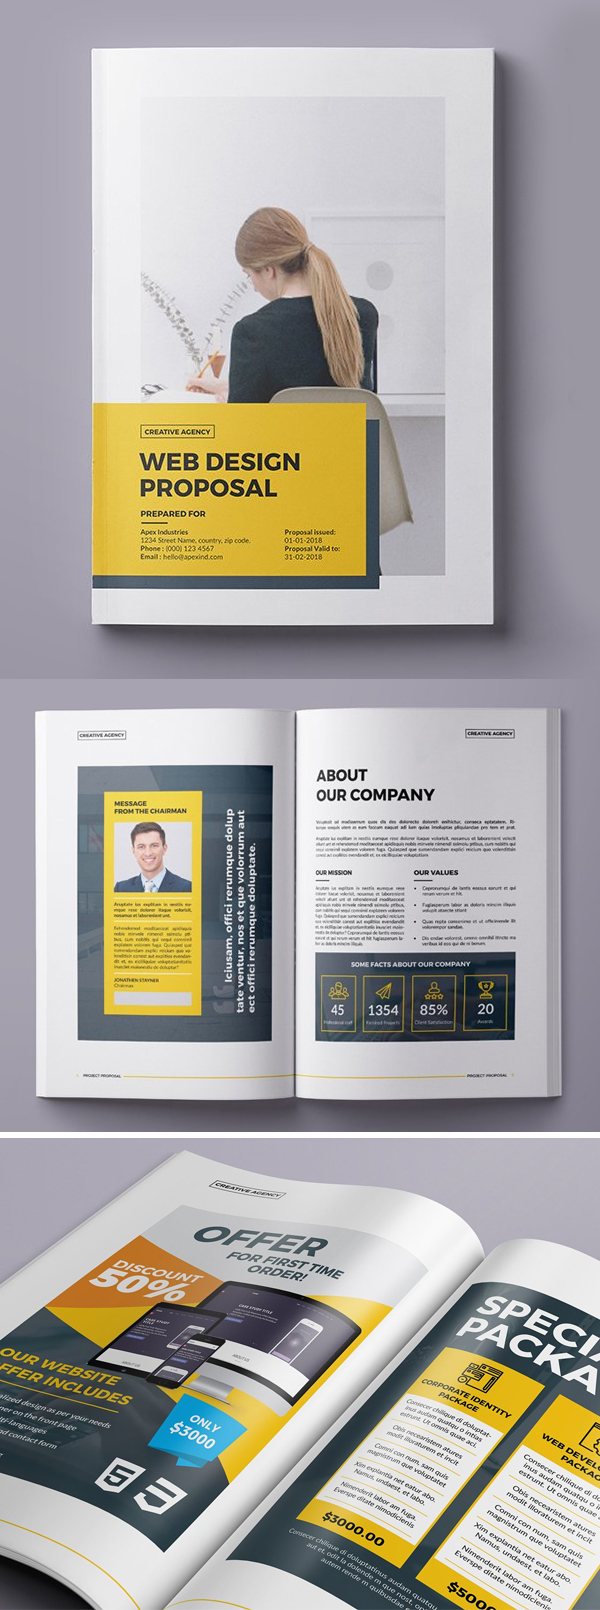 Professional, Creative Web Design Proposal Template